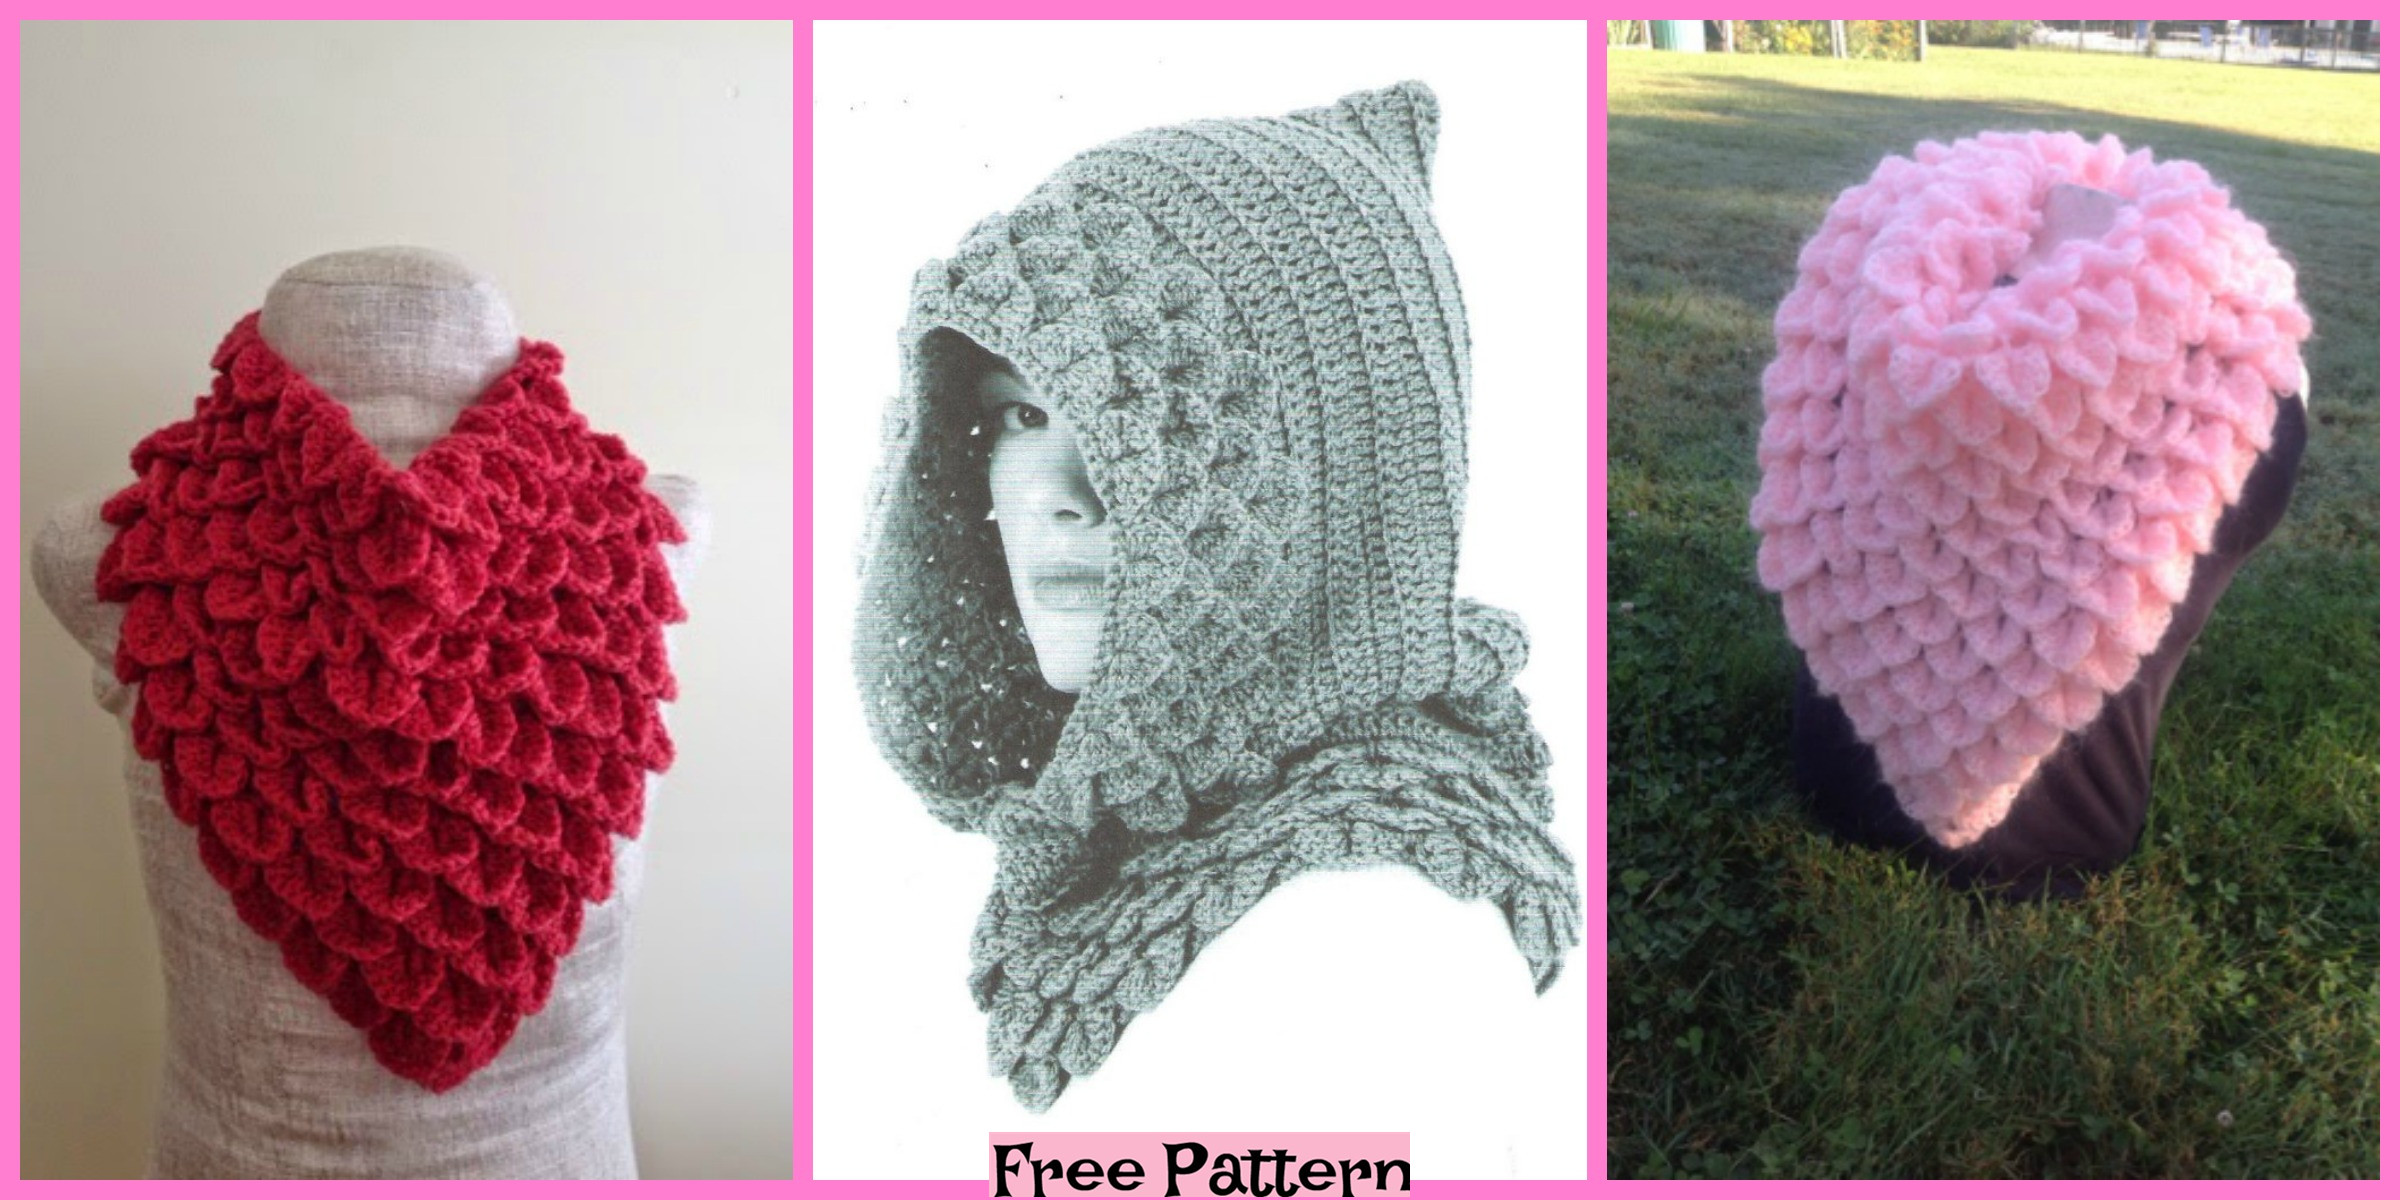 Crochet Crocodile Cowls – Free Patterns